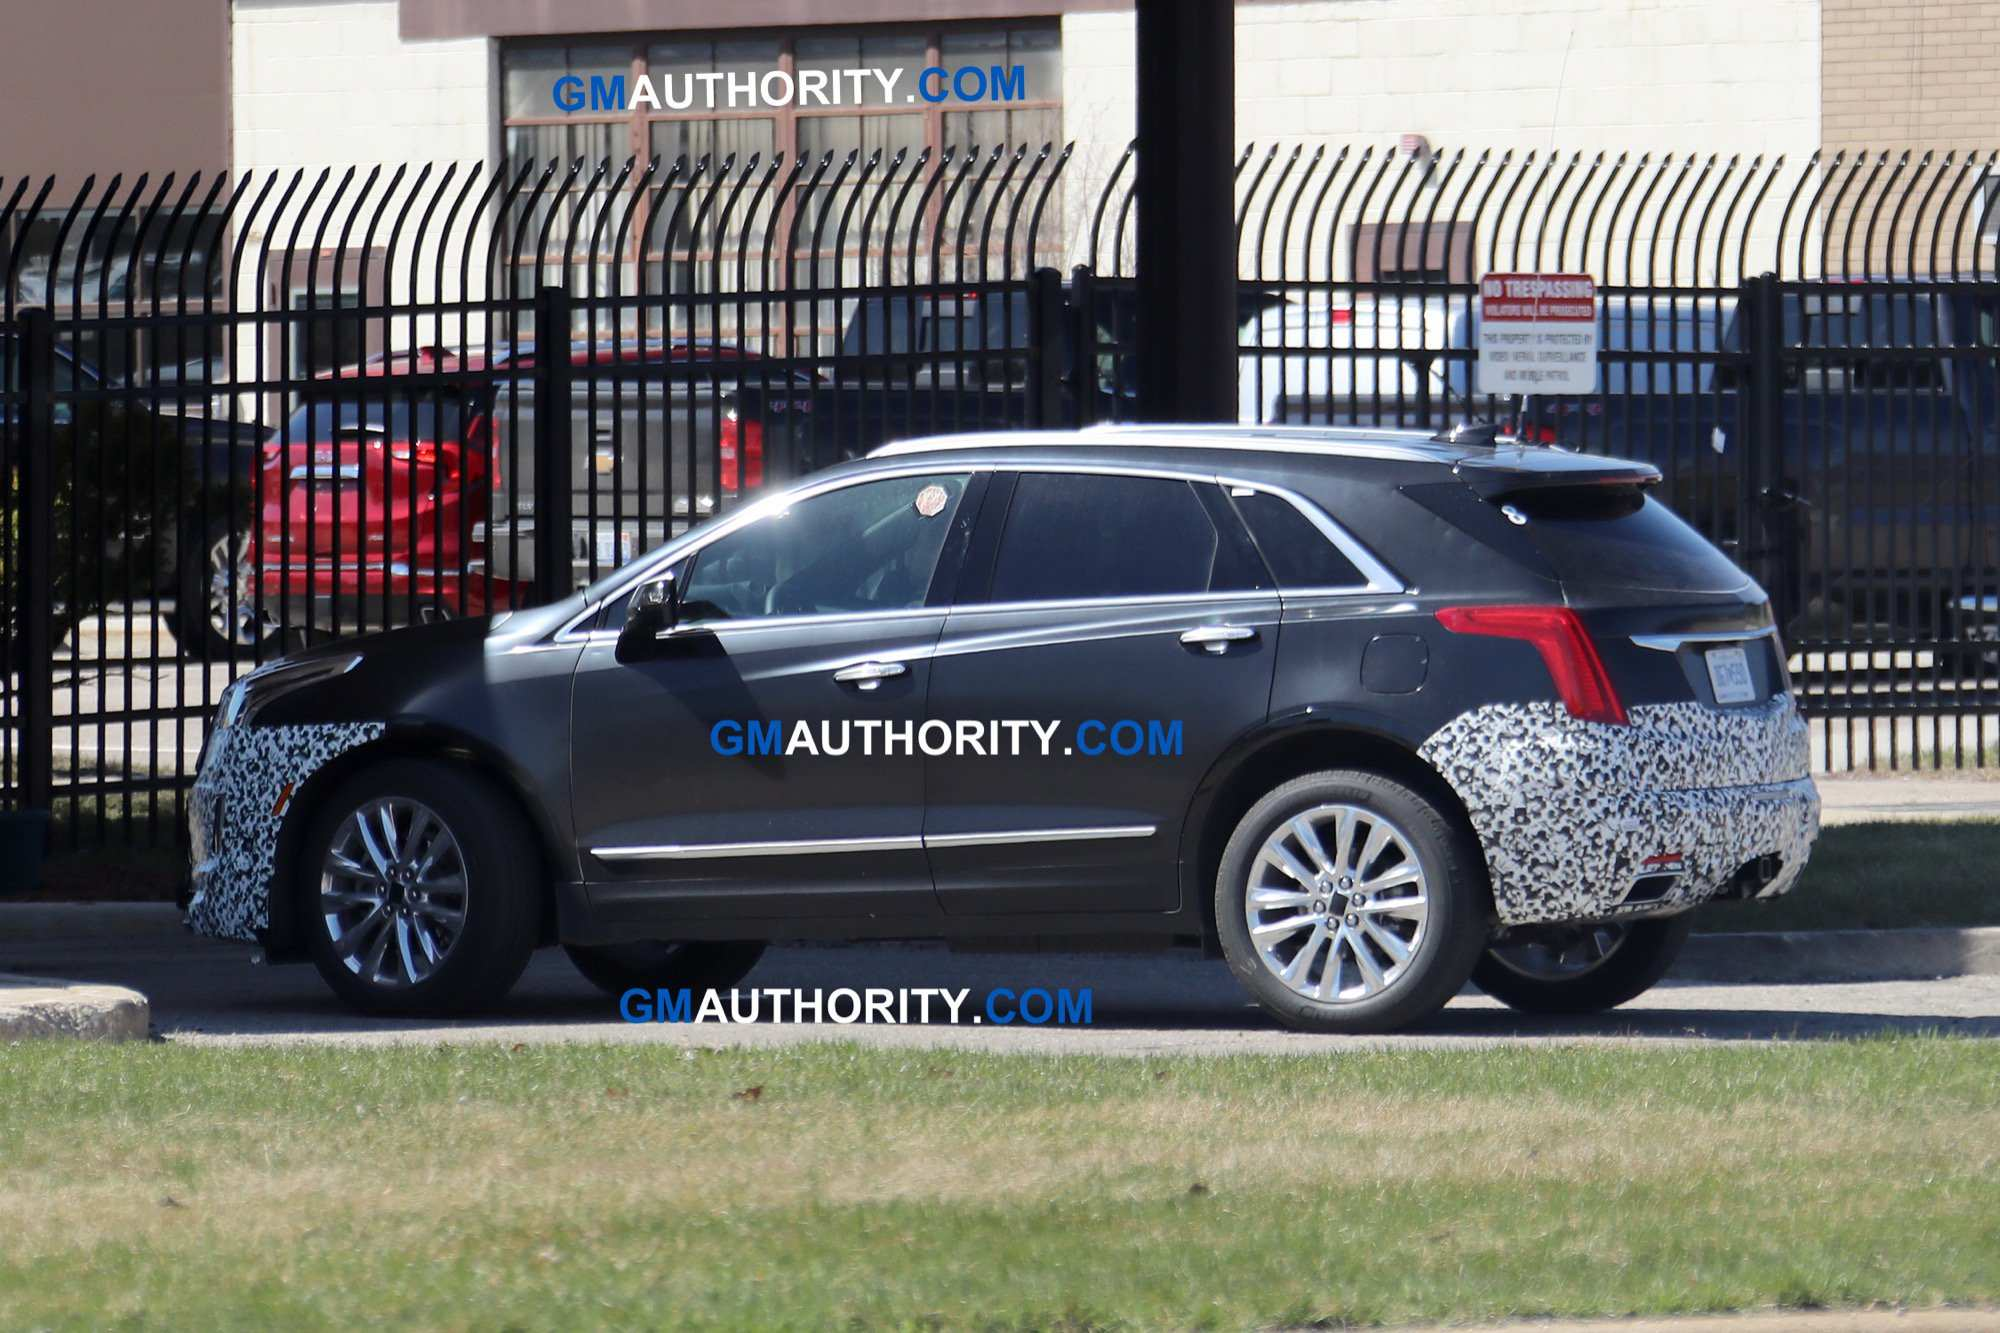 92 New 2019 Spy Shots Cadillac Xt5 Redesign And Review